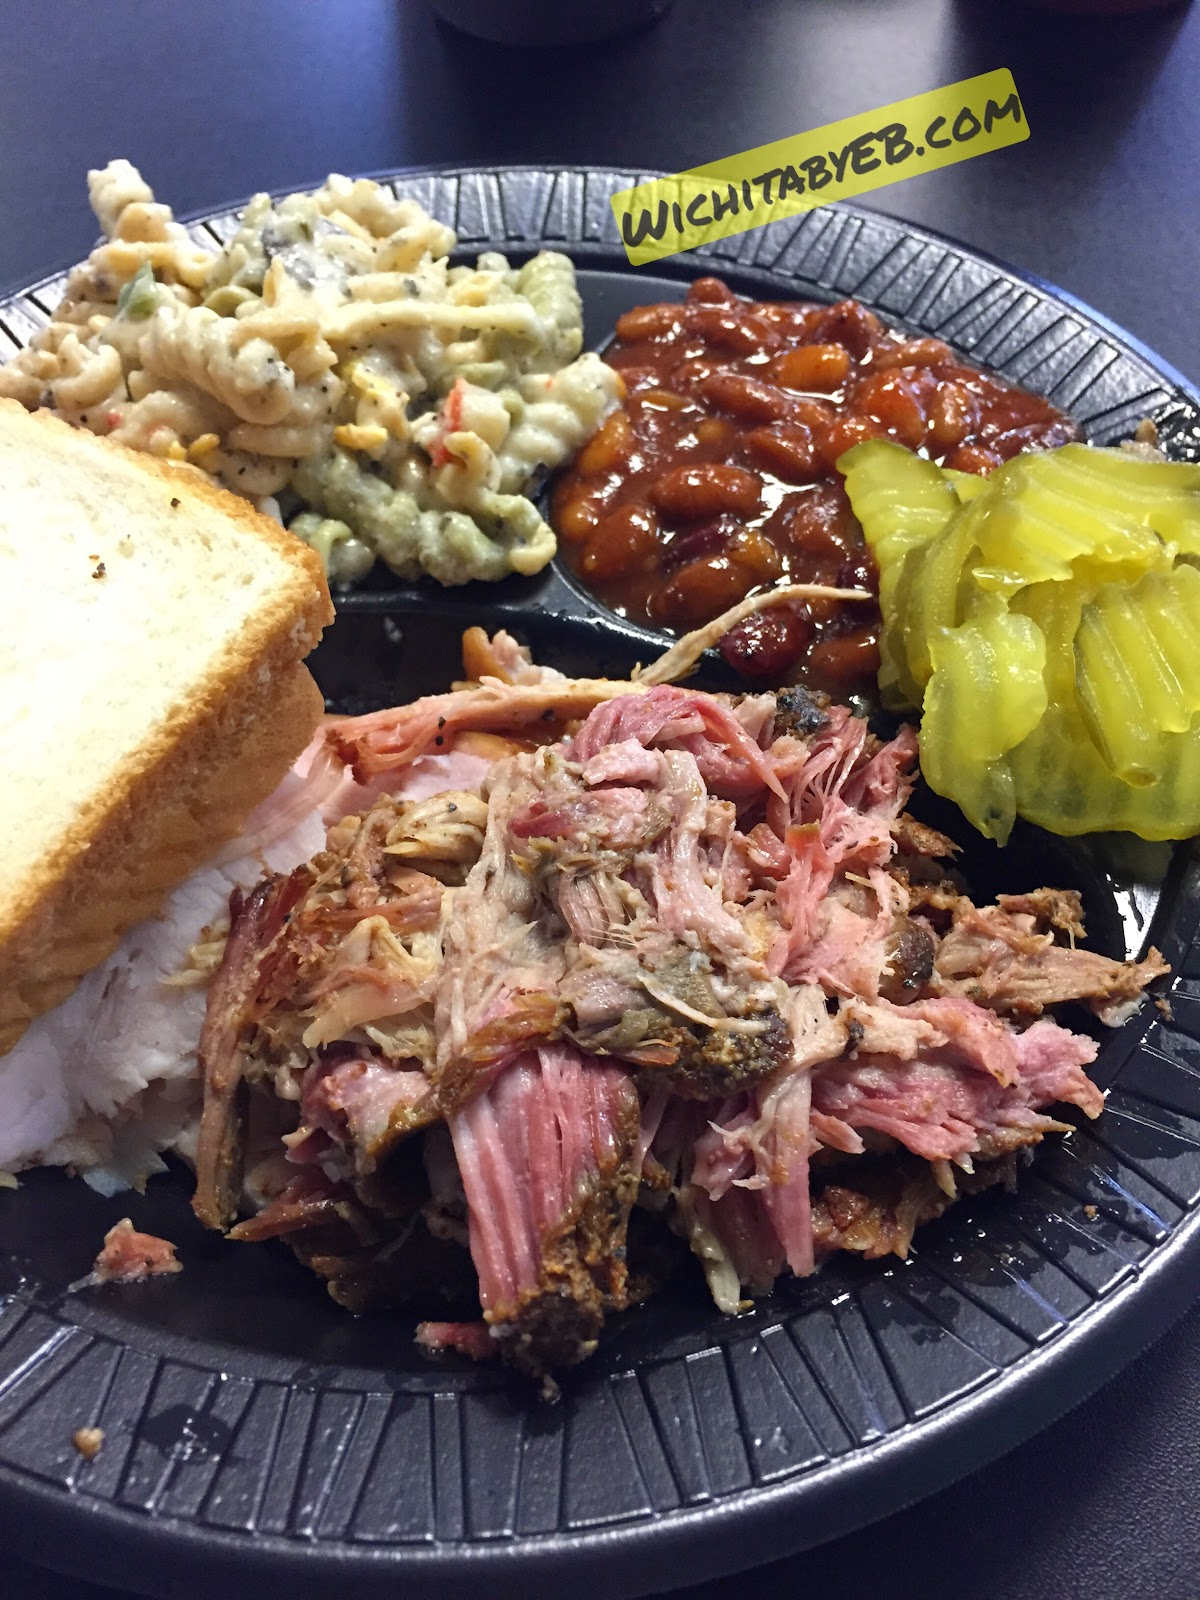 Pig In! Pig Out! BBQ Review – Wichita By E.B.